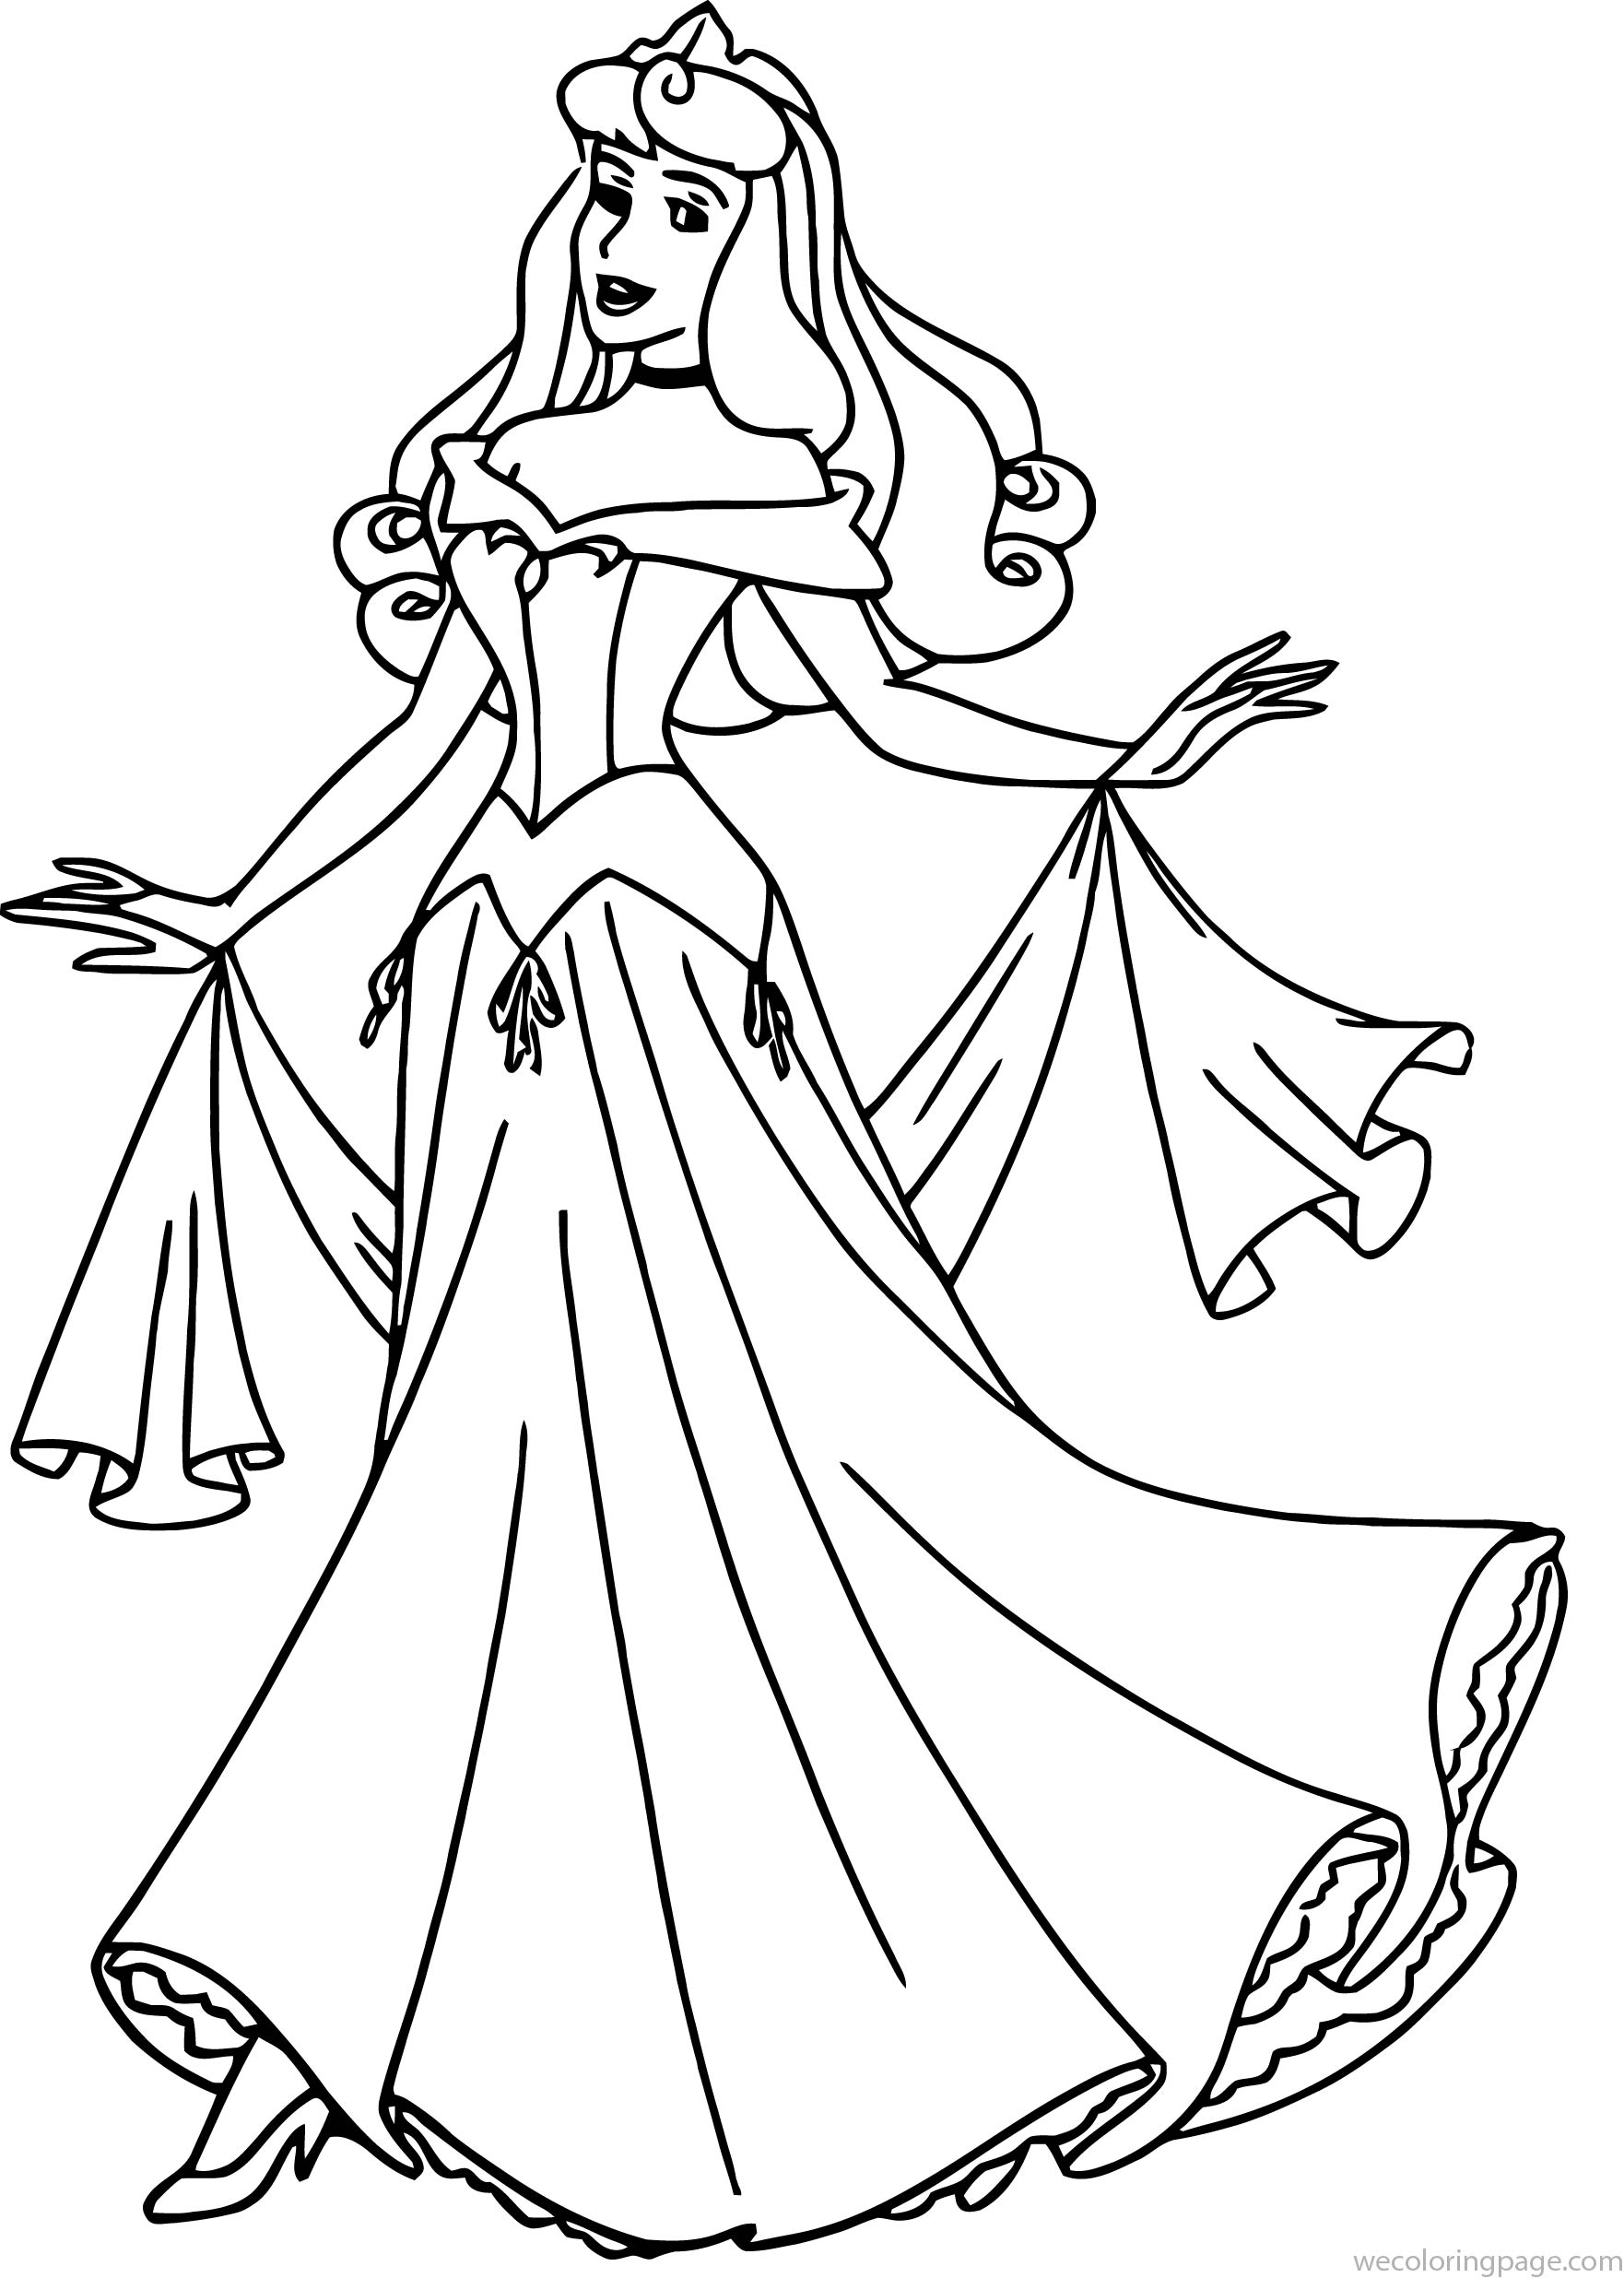 Disney Aurora Sleeping Beauty At Coloring Pages 16